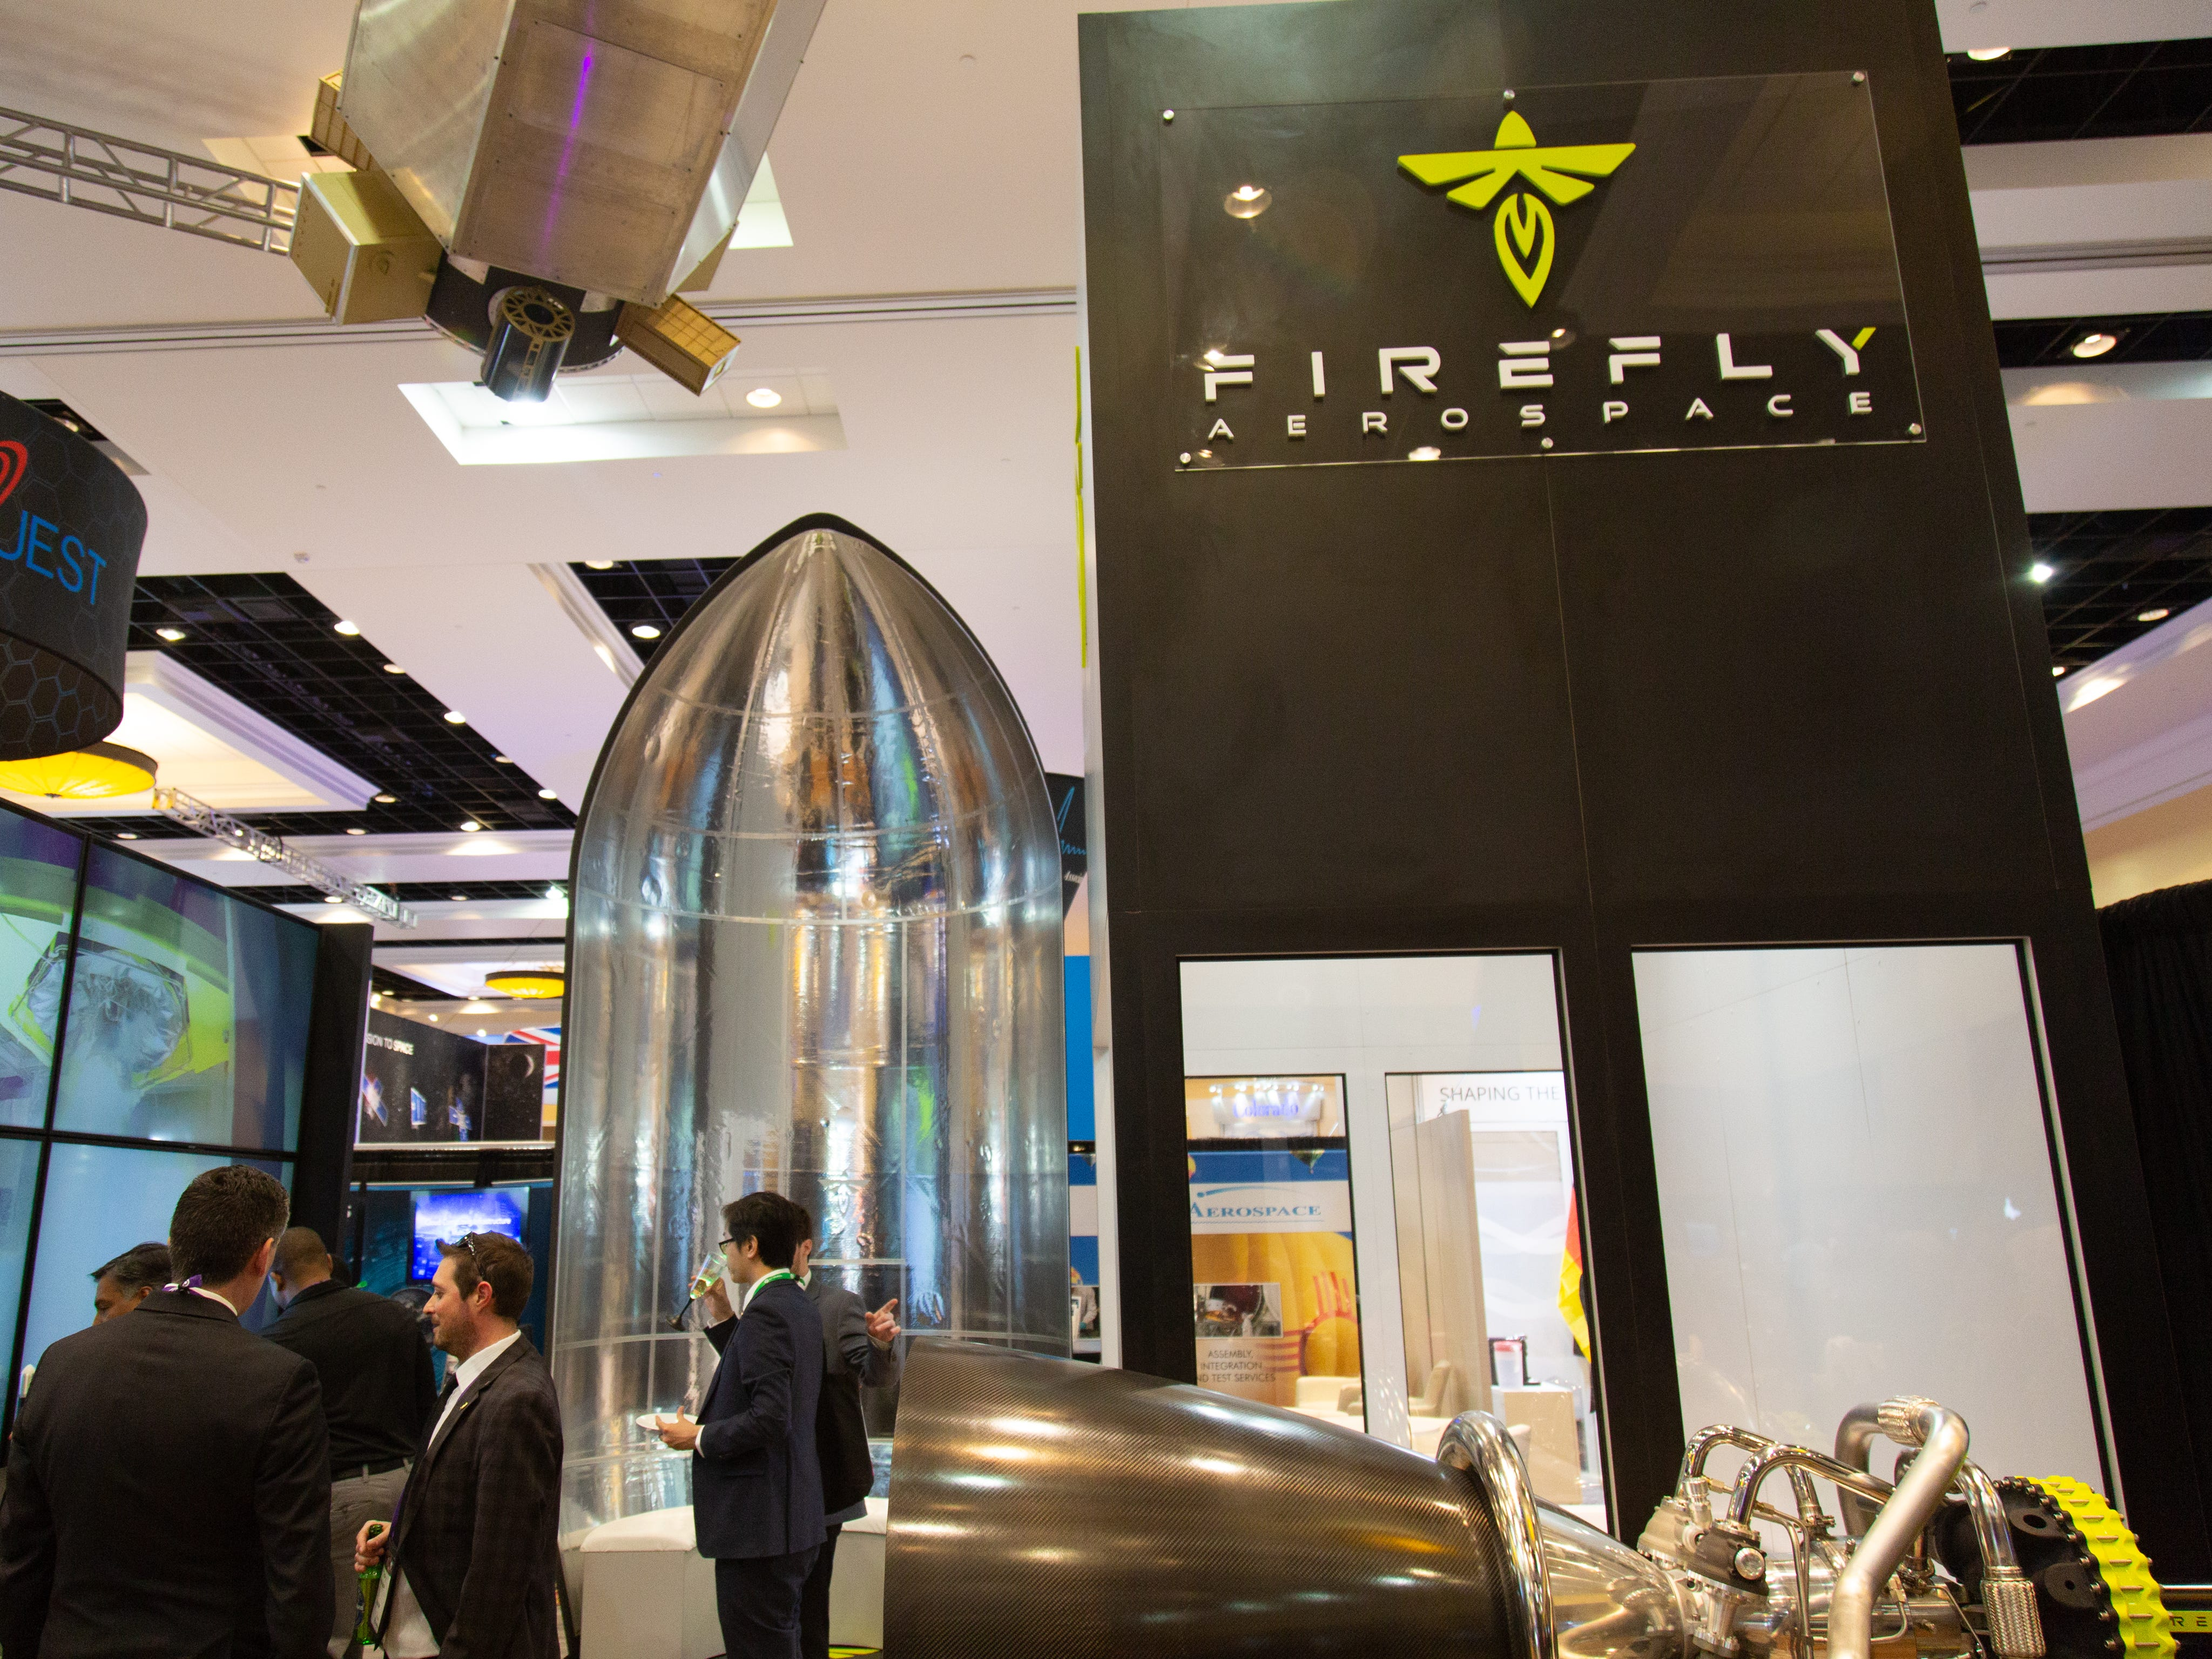 Firefly Aerospace's booth at the 35th Space Symposium in Colorado Springs features a rocket engined and mock payload fairing.